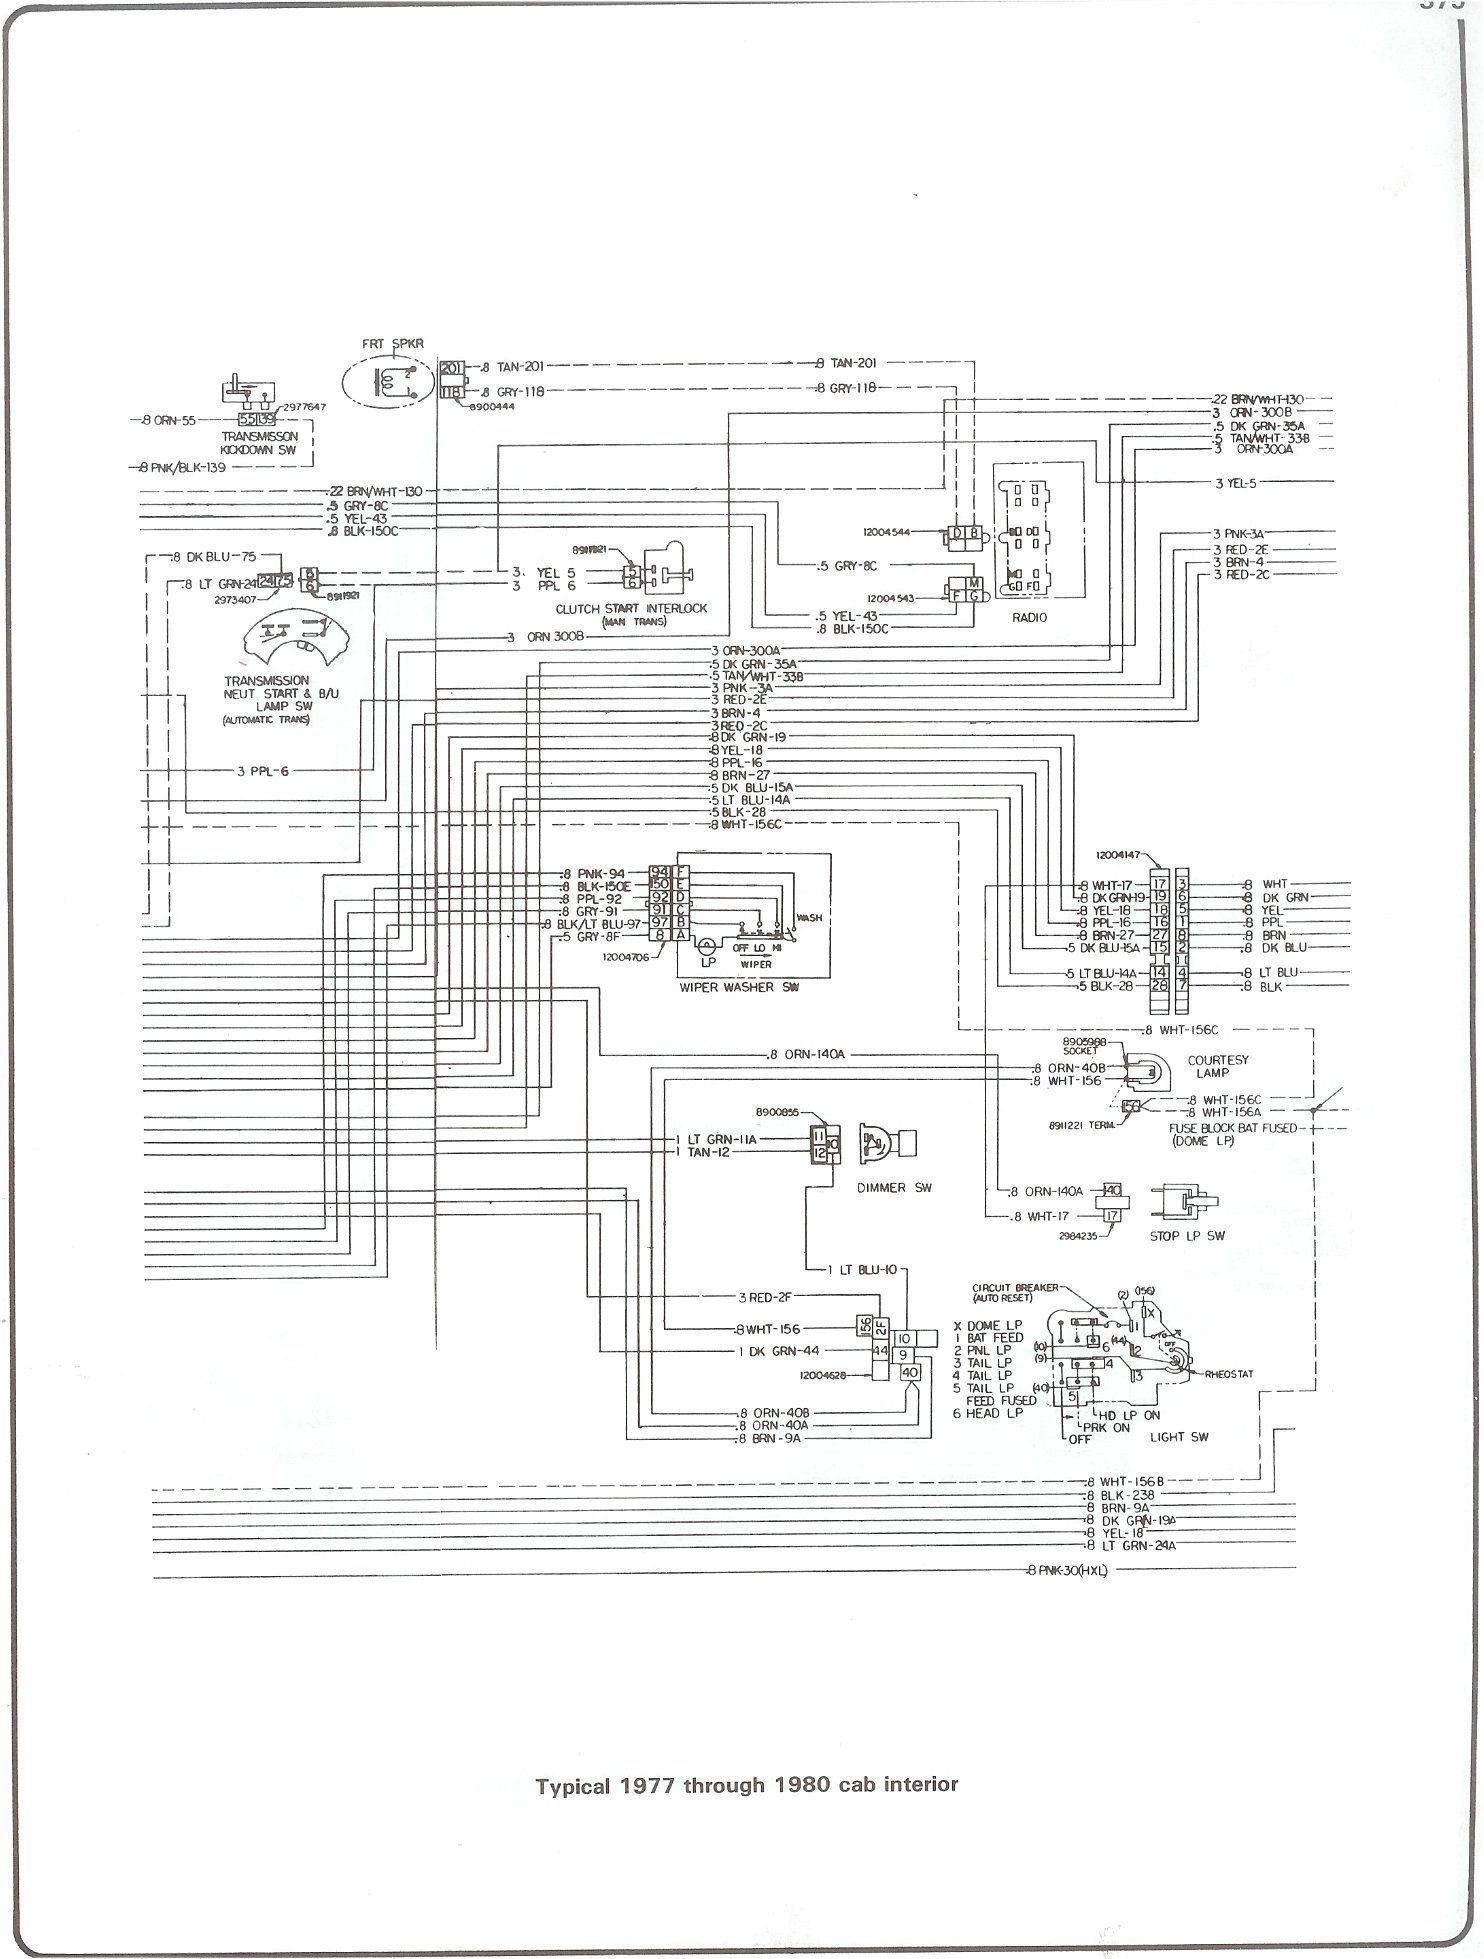 complete 73 87 wiring diagrams rh forum 73 87chevytrucks com 1972 chevy truck wiring diagram 1977 chevy pickup wiring diagram